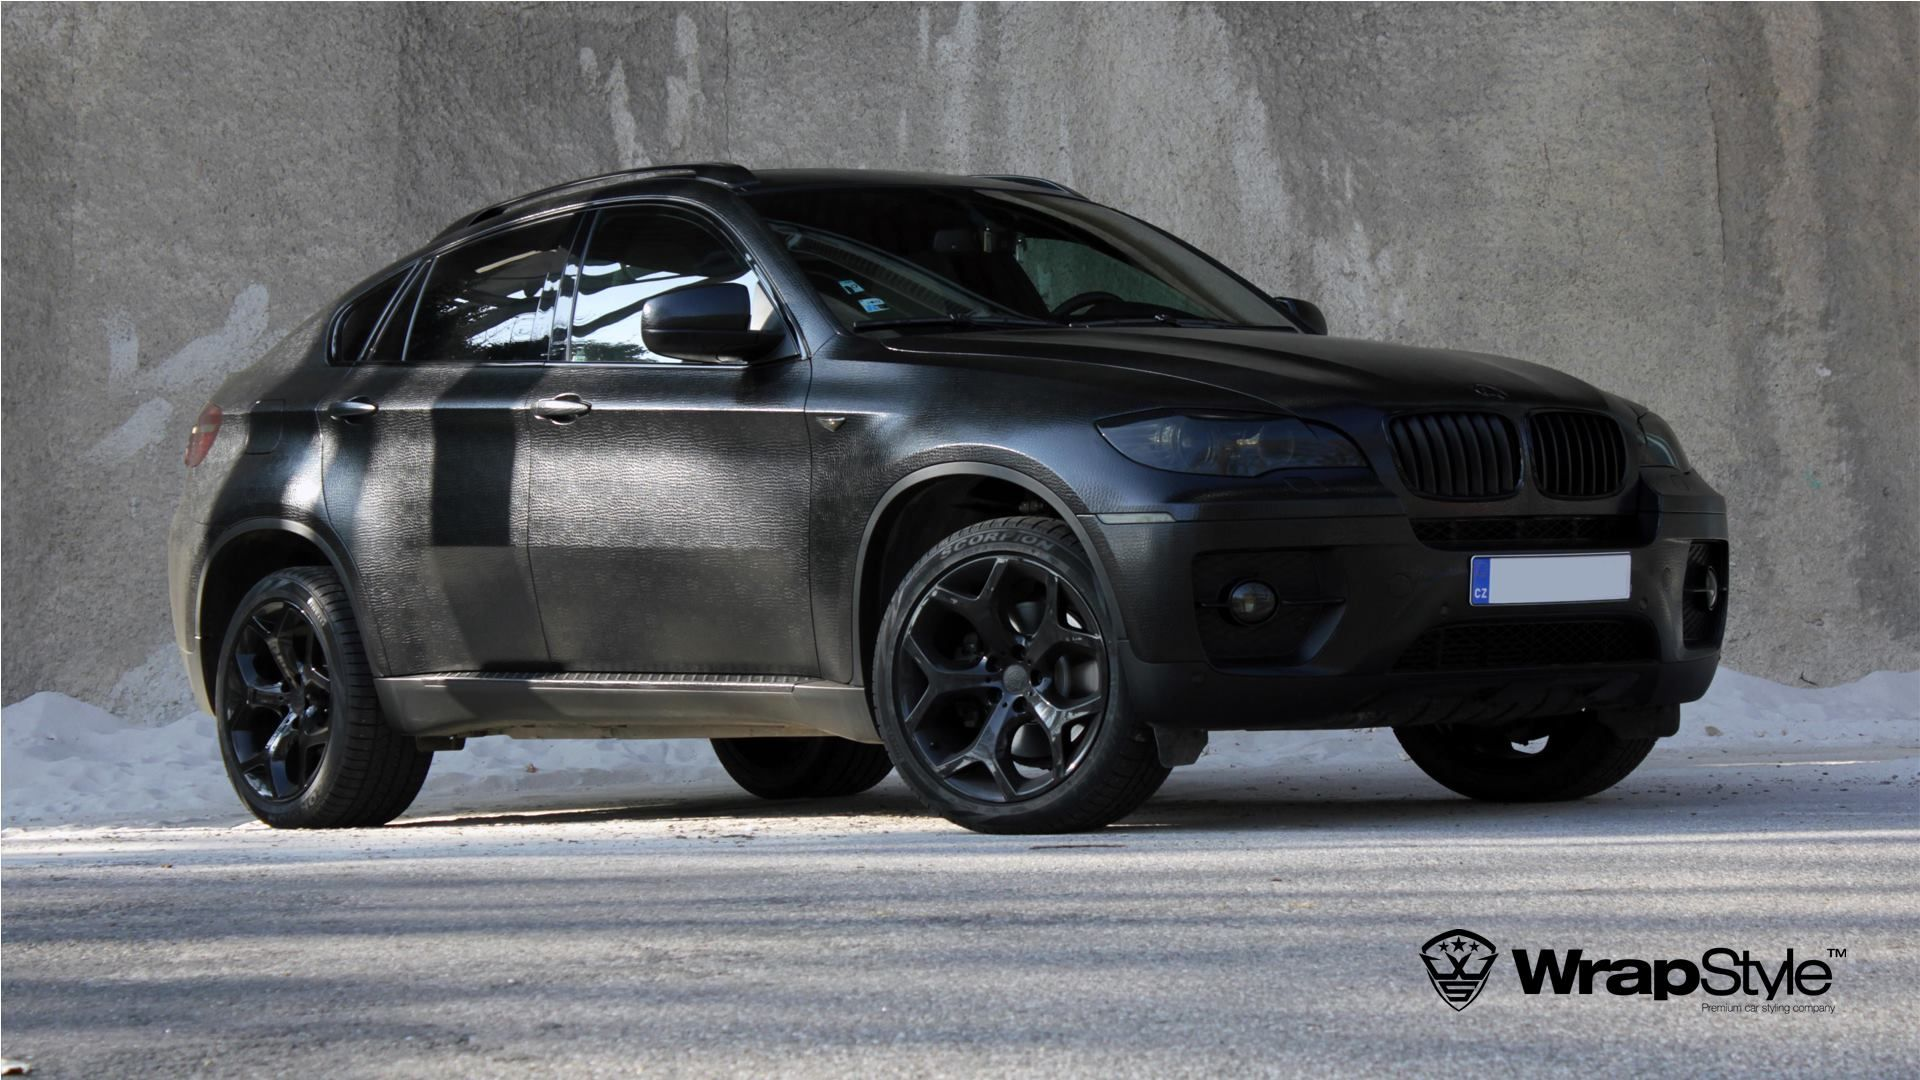 Pin By Bryan Jones On Bmw Bmw X6 Black Bmw X6 Bmw